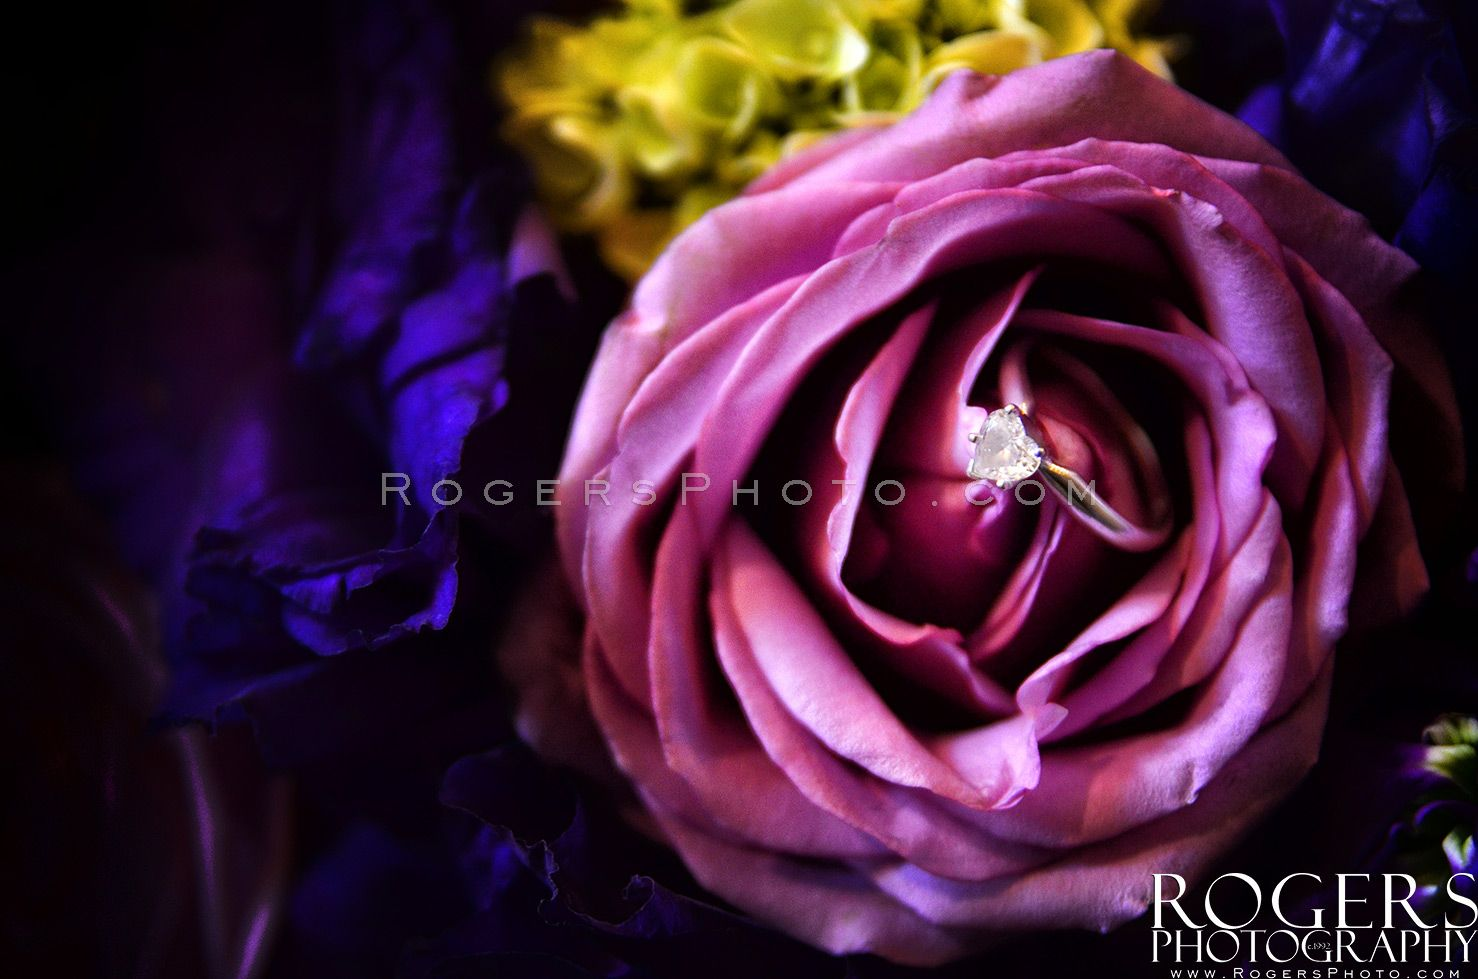 Engagement Ring. - Rogers Photography | Wedding Rings & Blings of ...